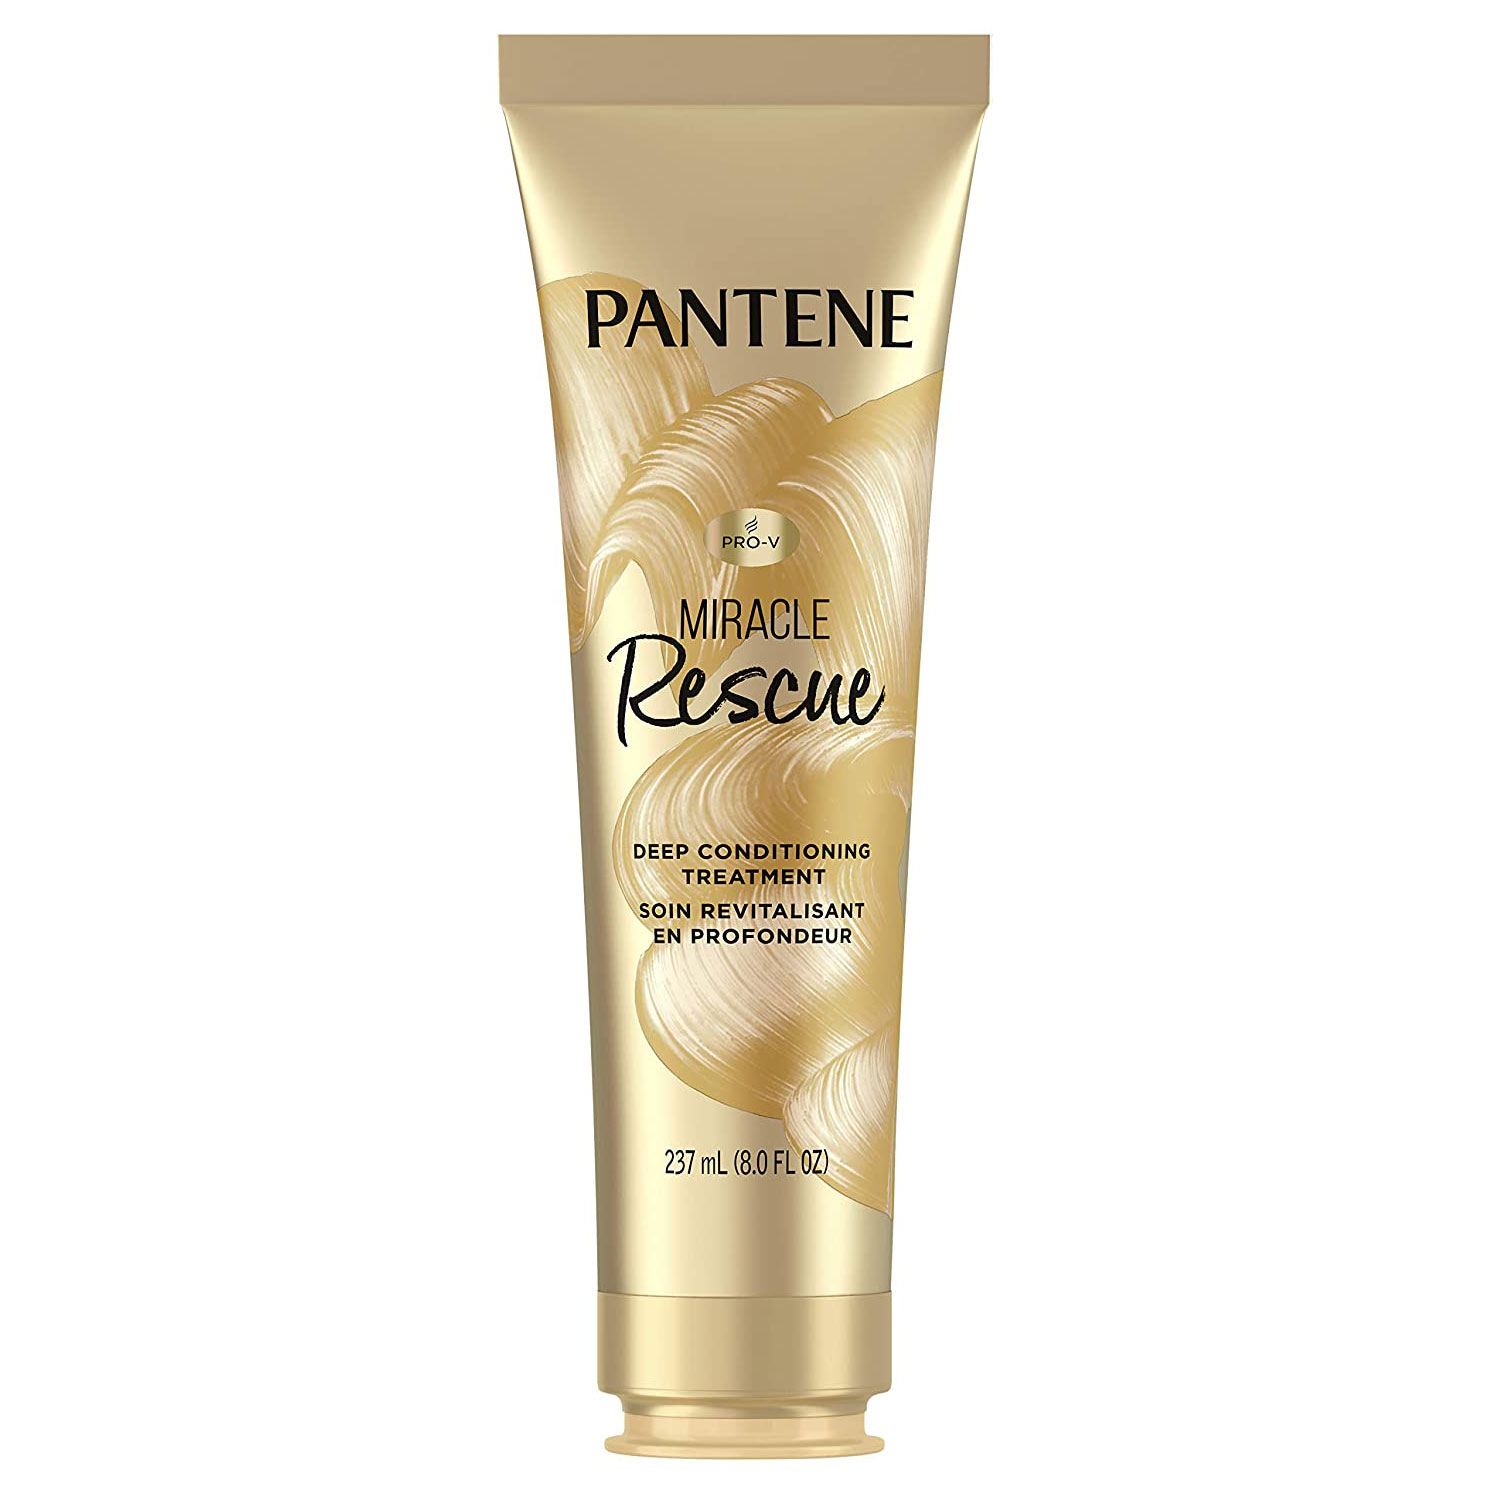 Pantene Miracle Rescue Conditioner